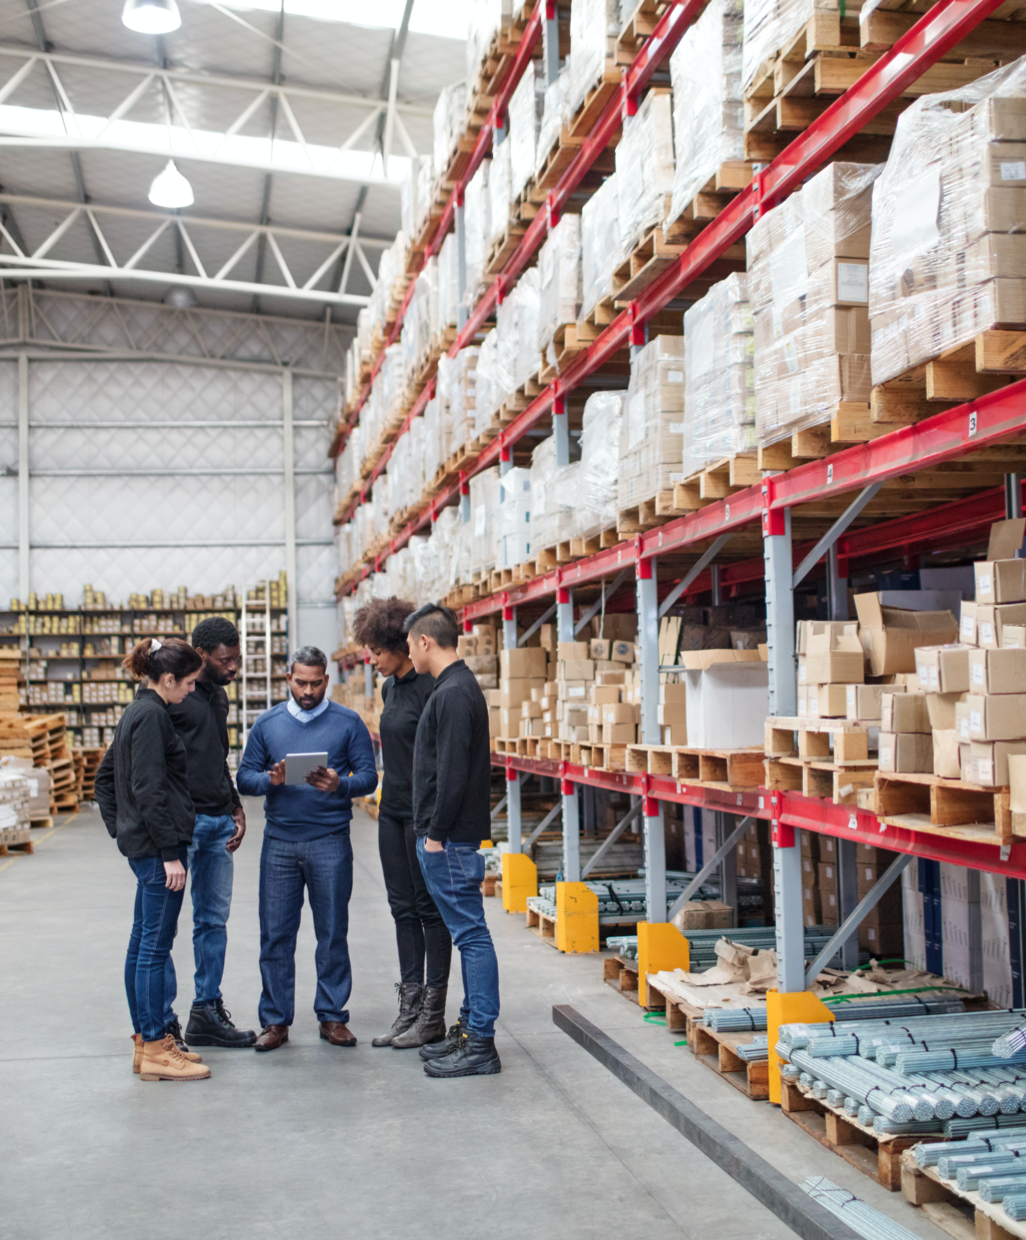 People consulting in a warehouse